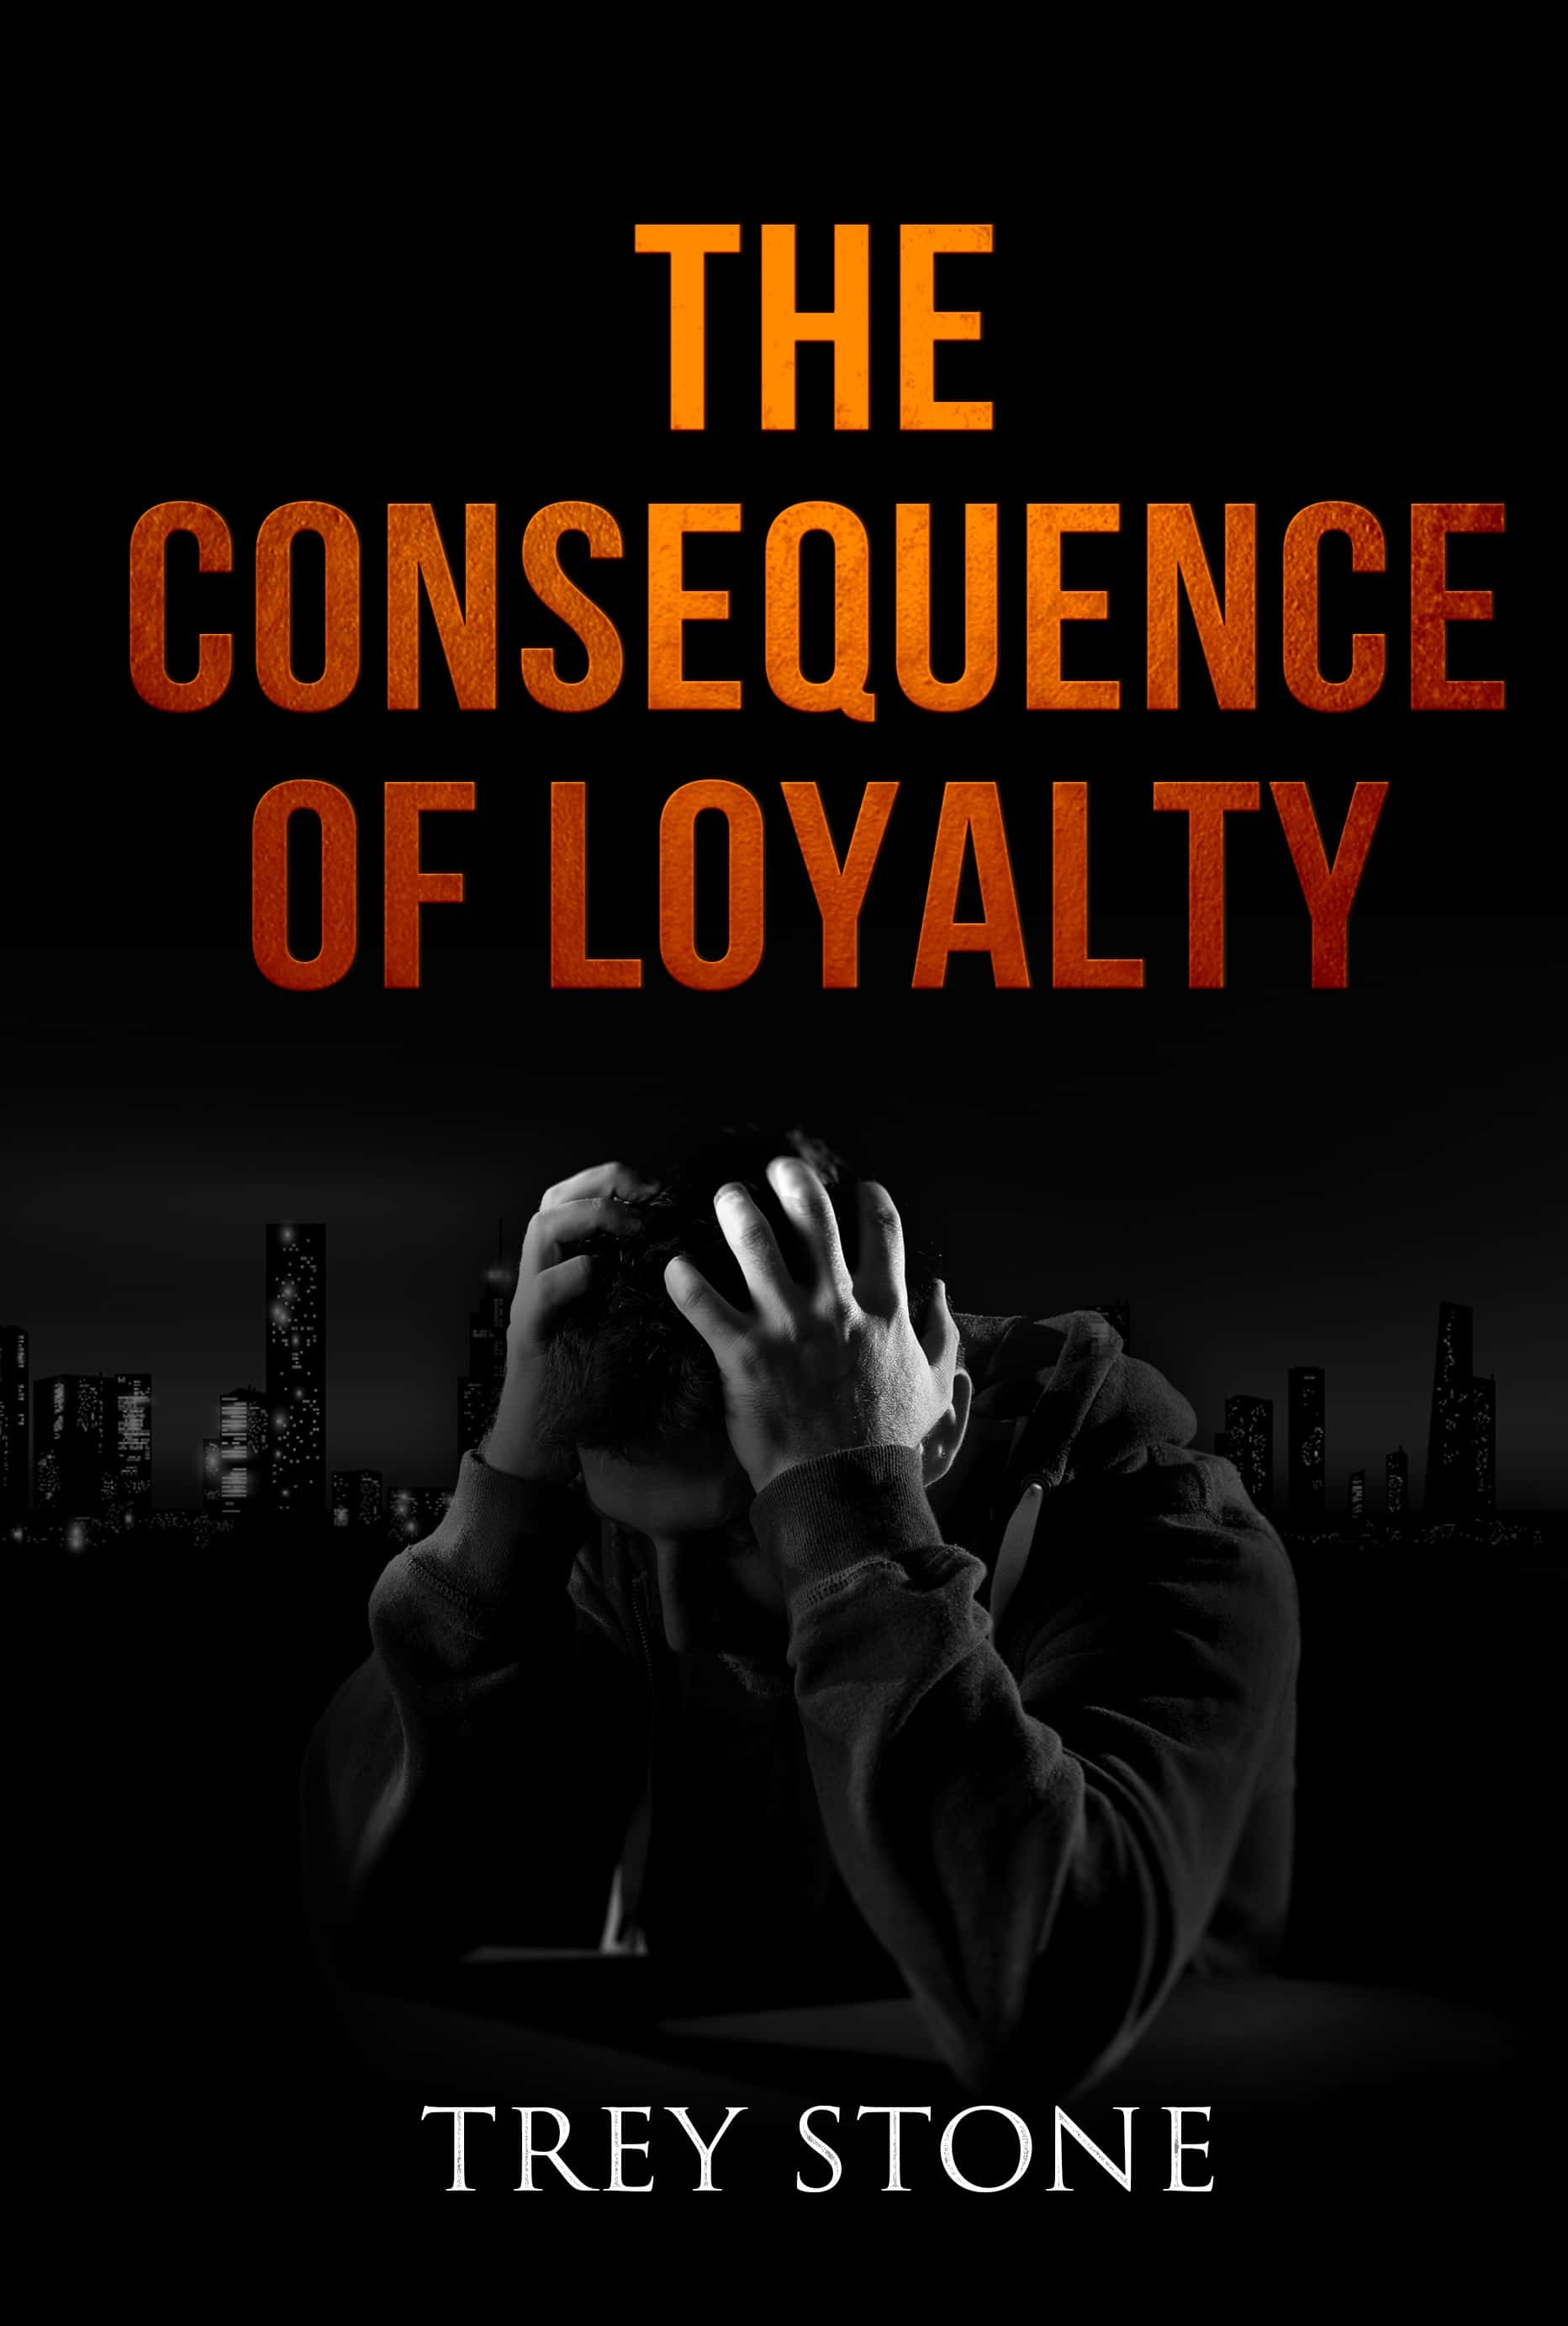 The Consequence of Loyalty